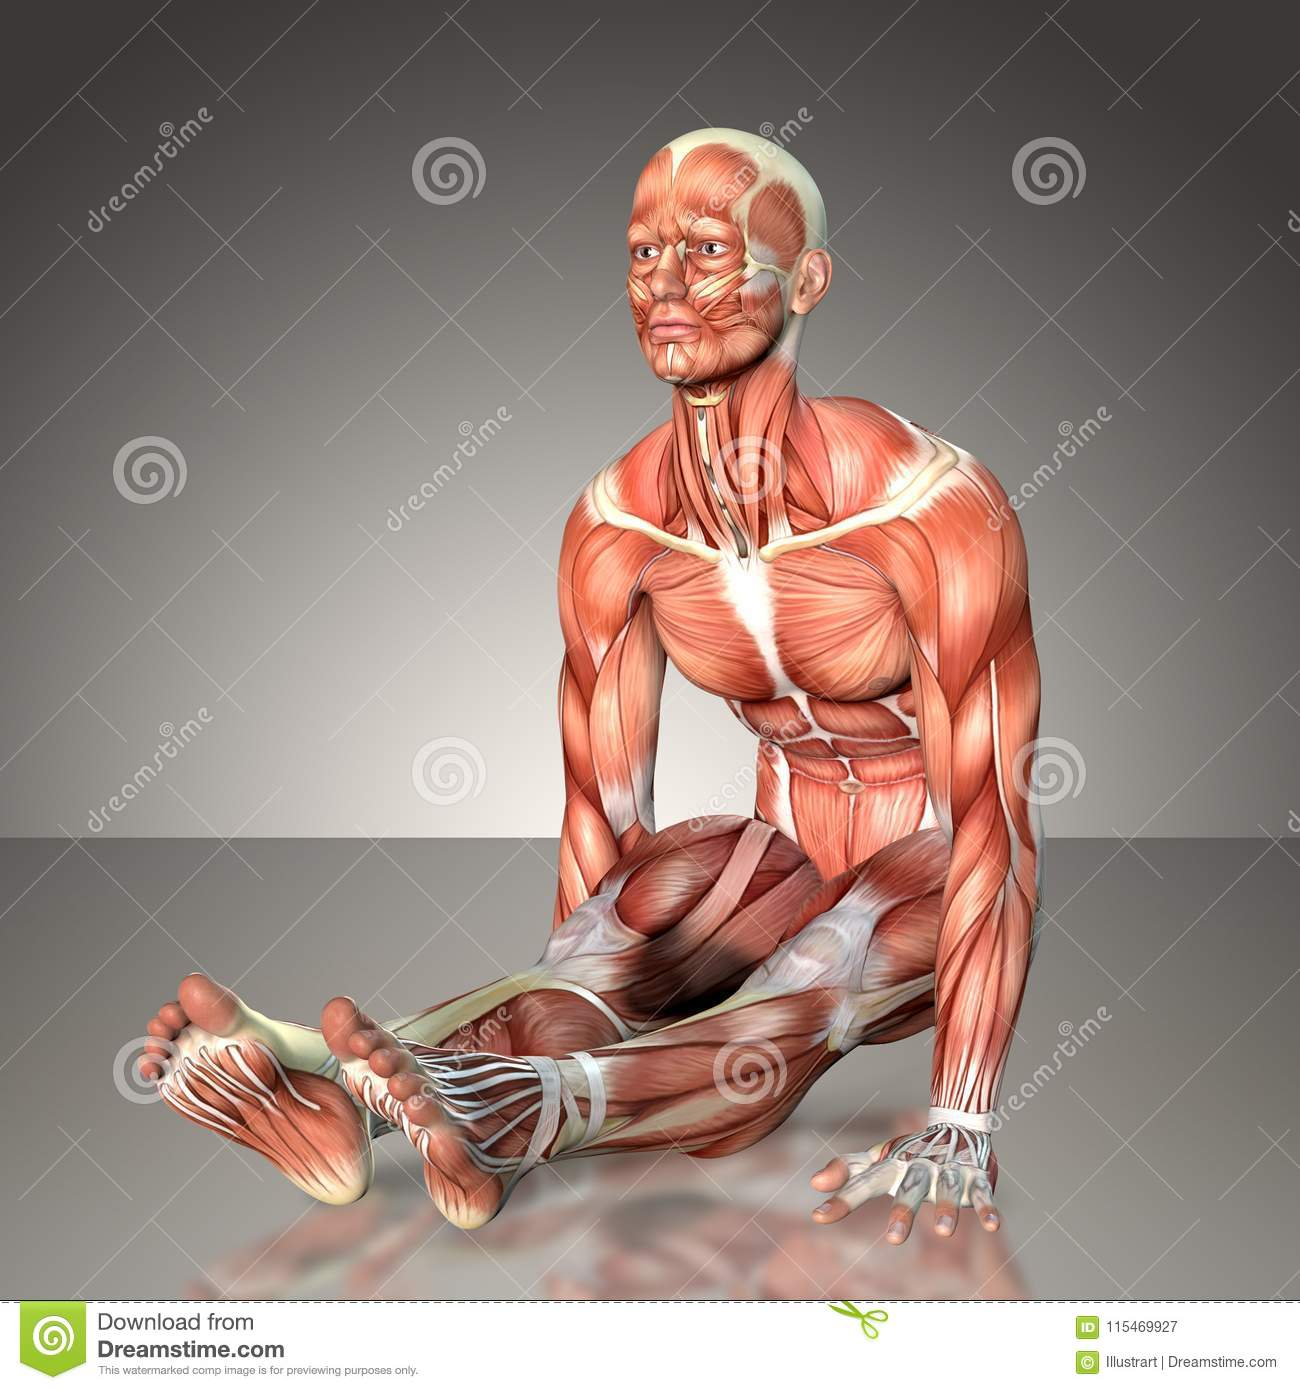 3d Rendering Of A Male Anatomy Figure In Exercise Pose Stock